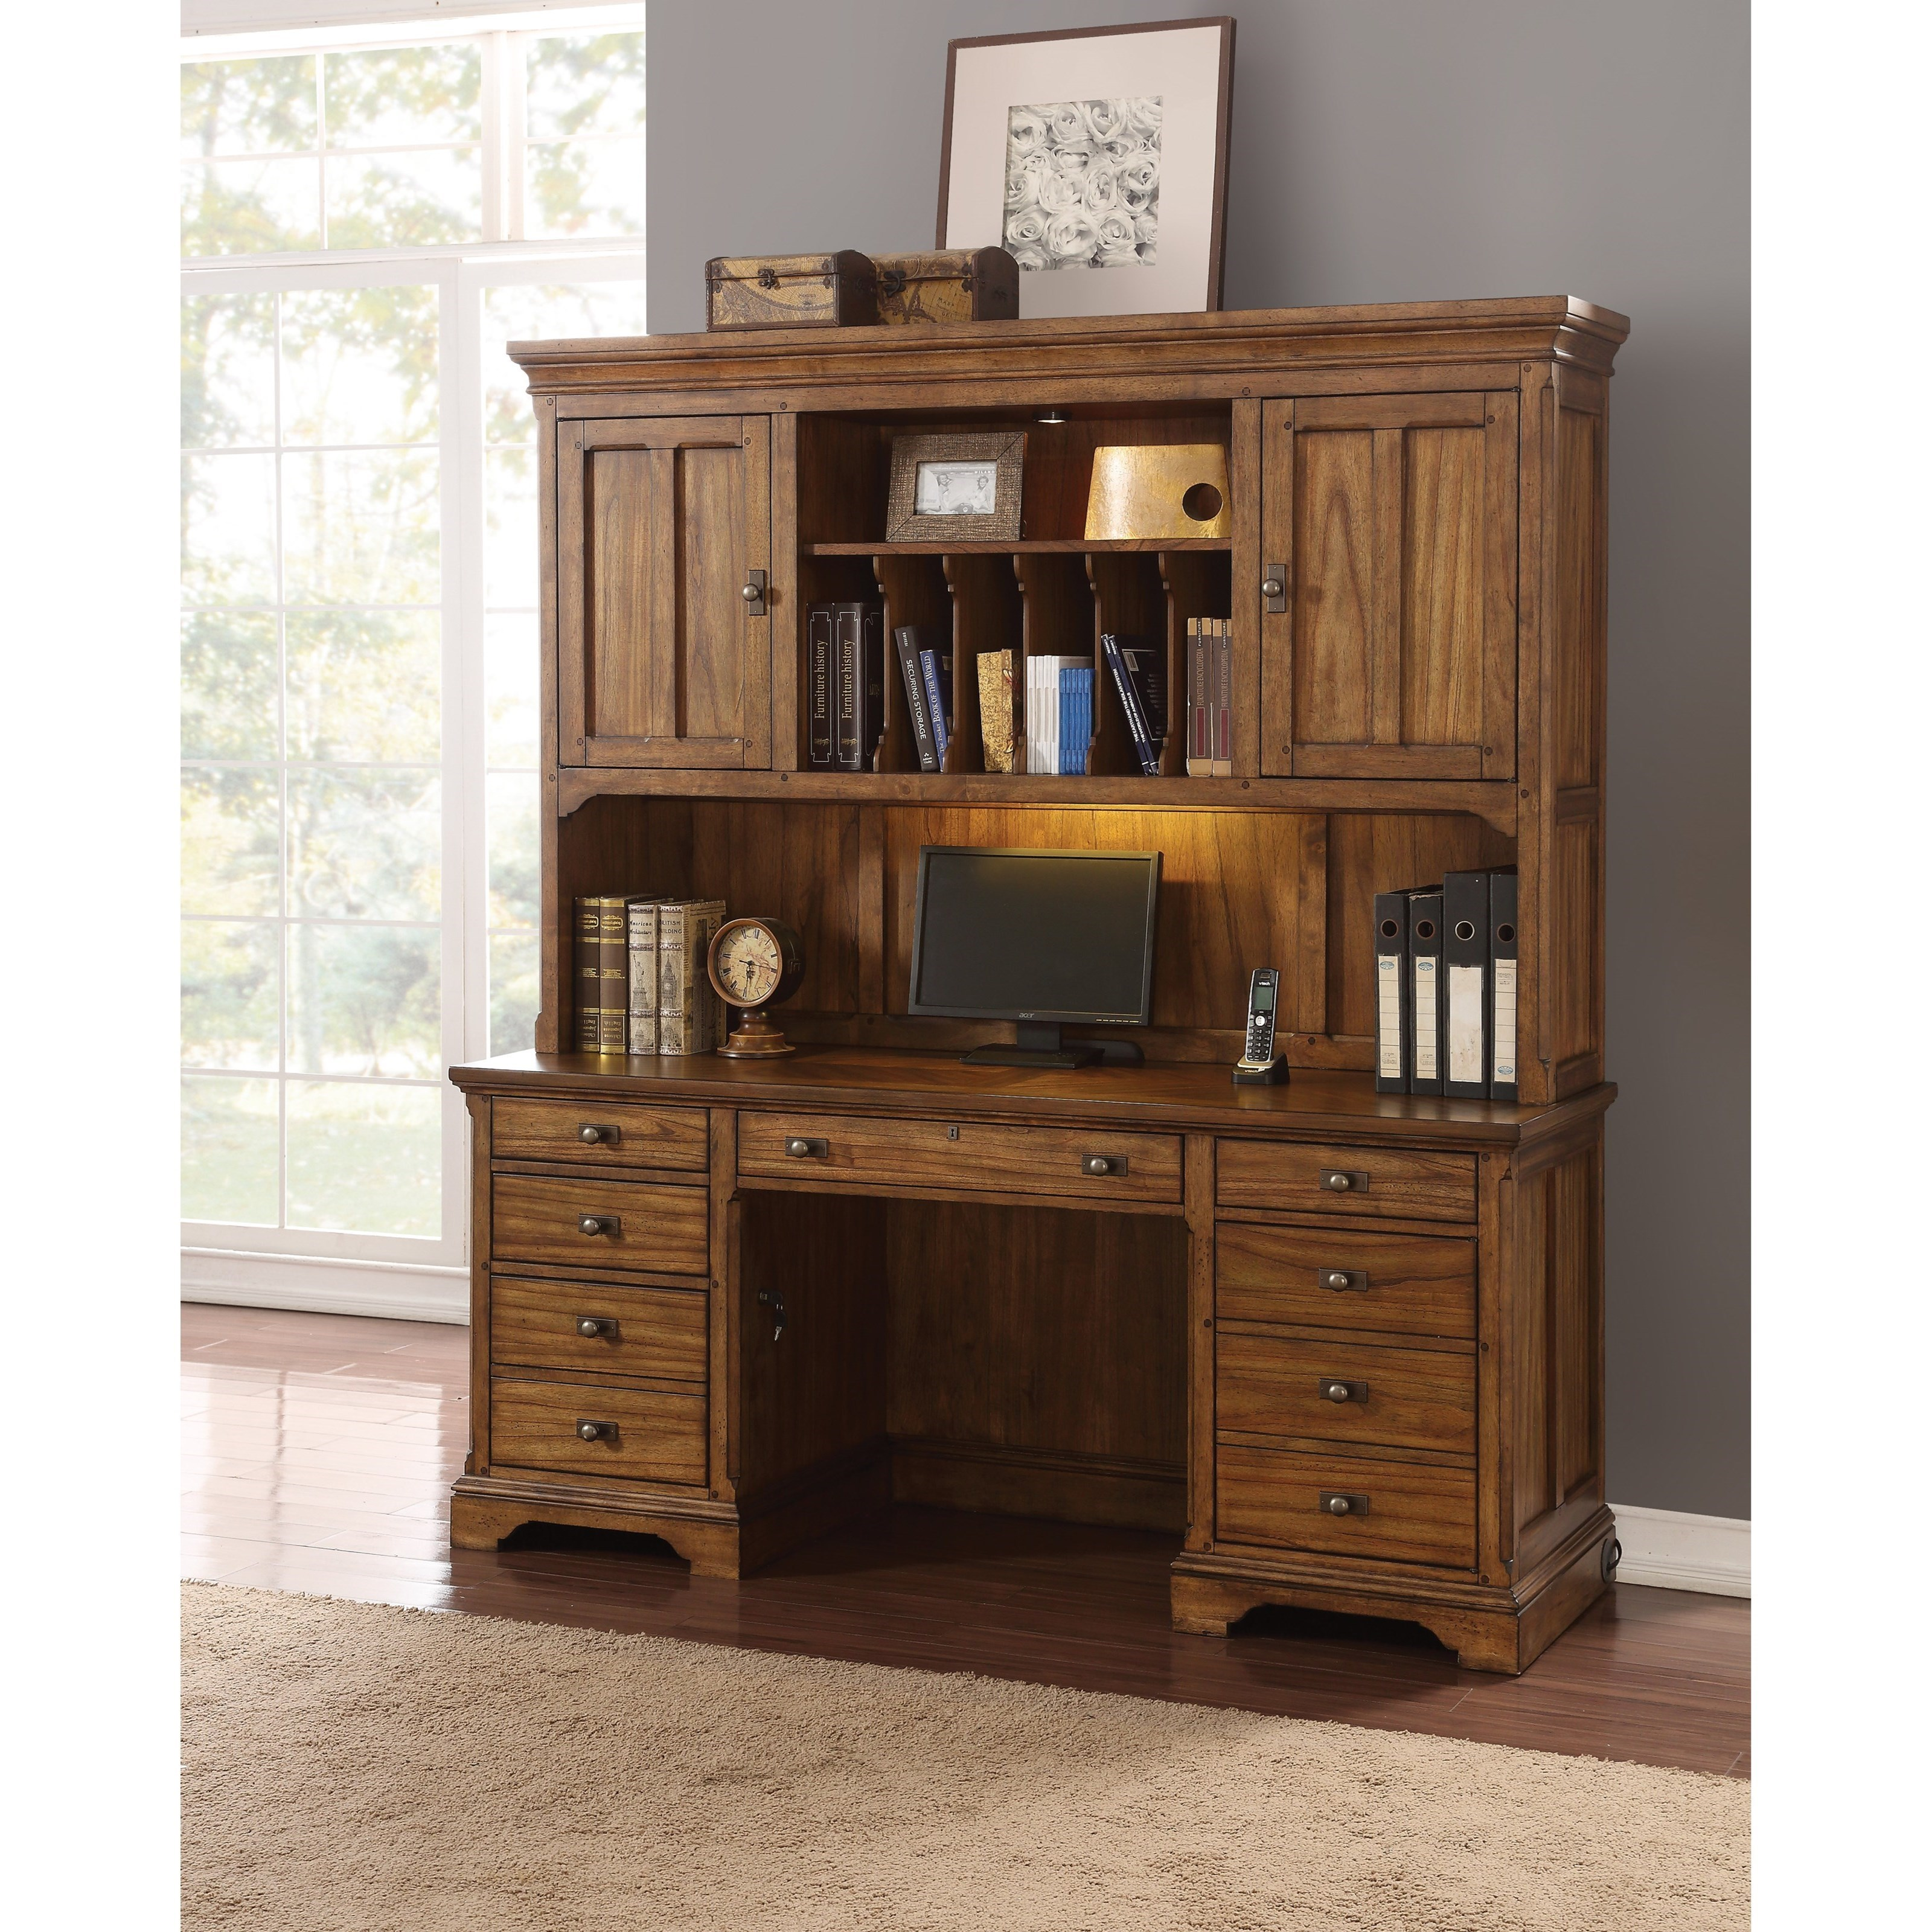 Ordinaire Flexsteel Wynwood Collection Sonora Mission Kneehole Credenza And Hutch  With Lighting